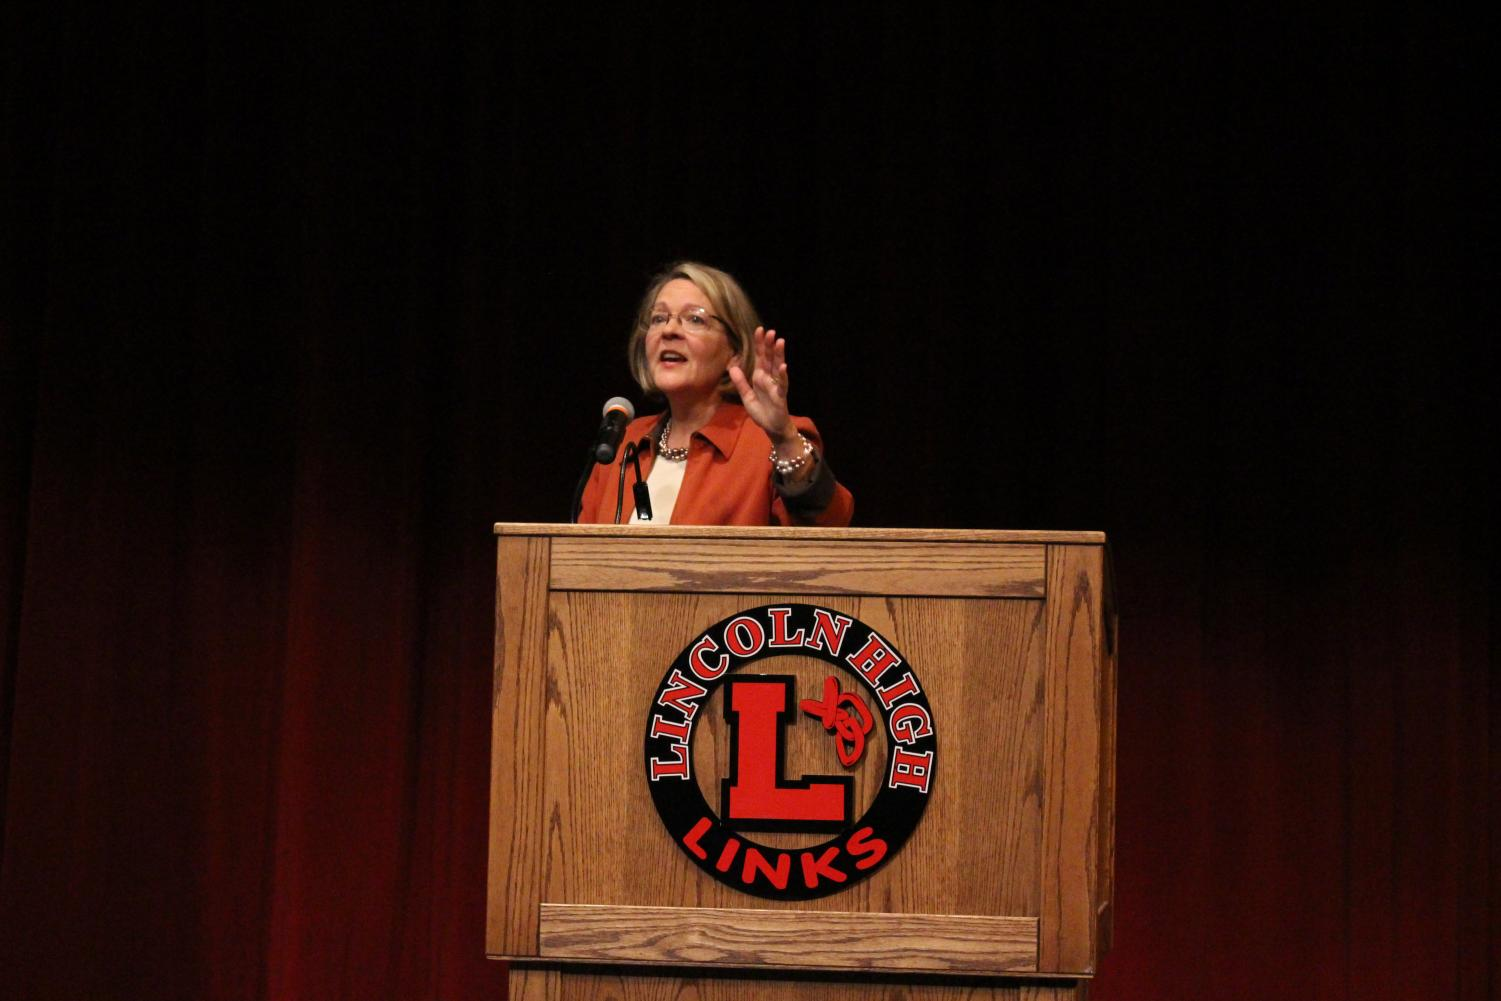 Jane Raybould, Democratic Senate candidate, speaks to Lincoln High students in the Ted Sorensen Theatre on October 30th, 2018 about her platforms. Raybould also answered questions submitted by Social Studies teacher Carol Flora's third period Civics class. Photo by Angel Tran